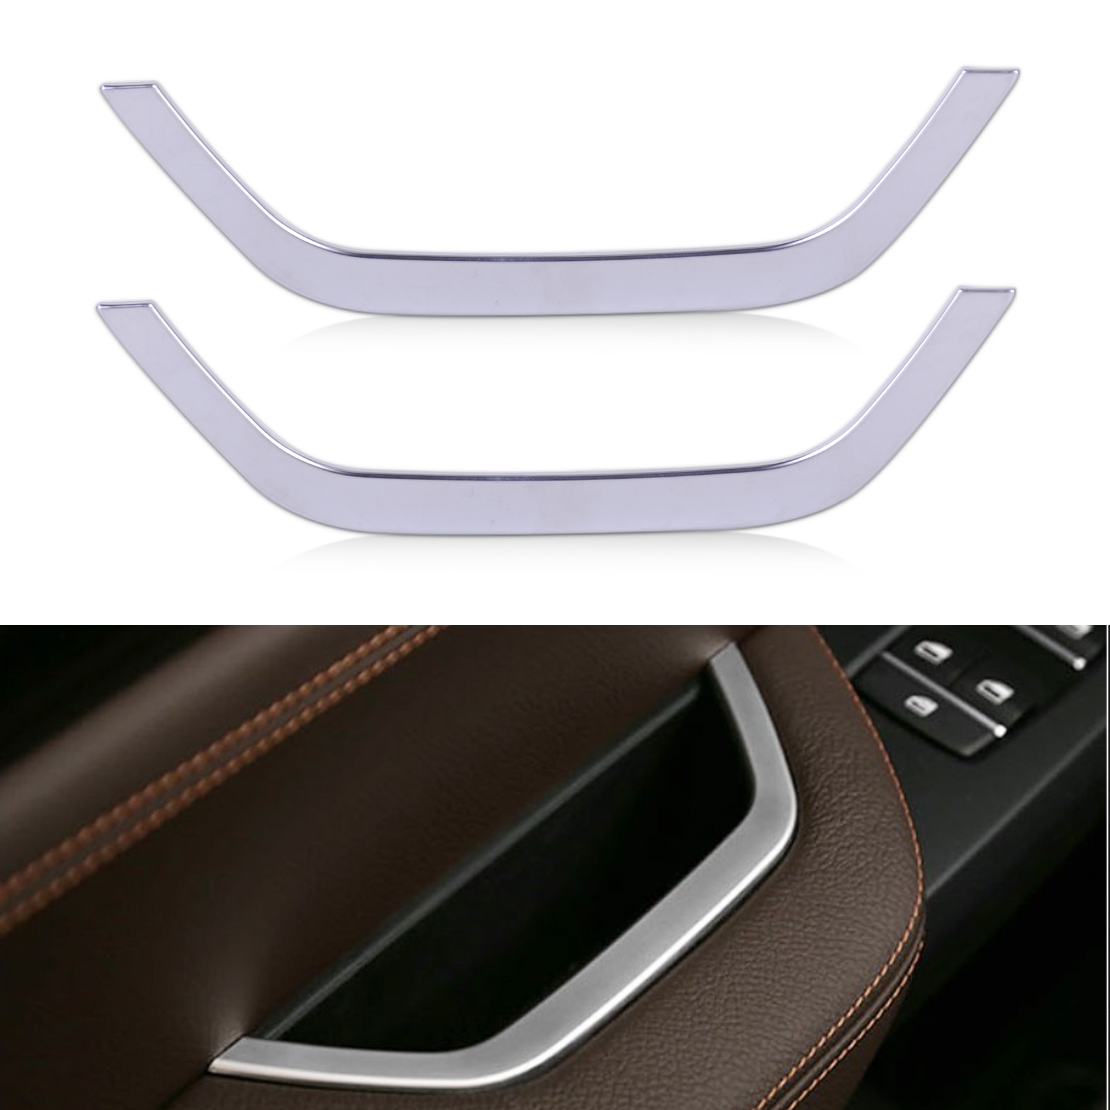 DWCX 2Pcs New Car Inner Armrest Door Storage Box Frame Cover Trim Decoration for BMW X3 F25 2011 2012 2013 2014 2015 2016 2017